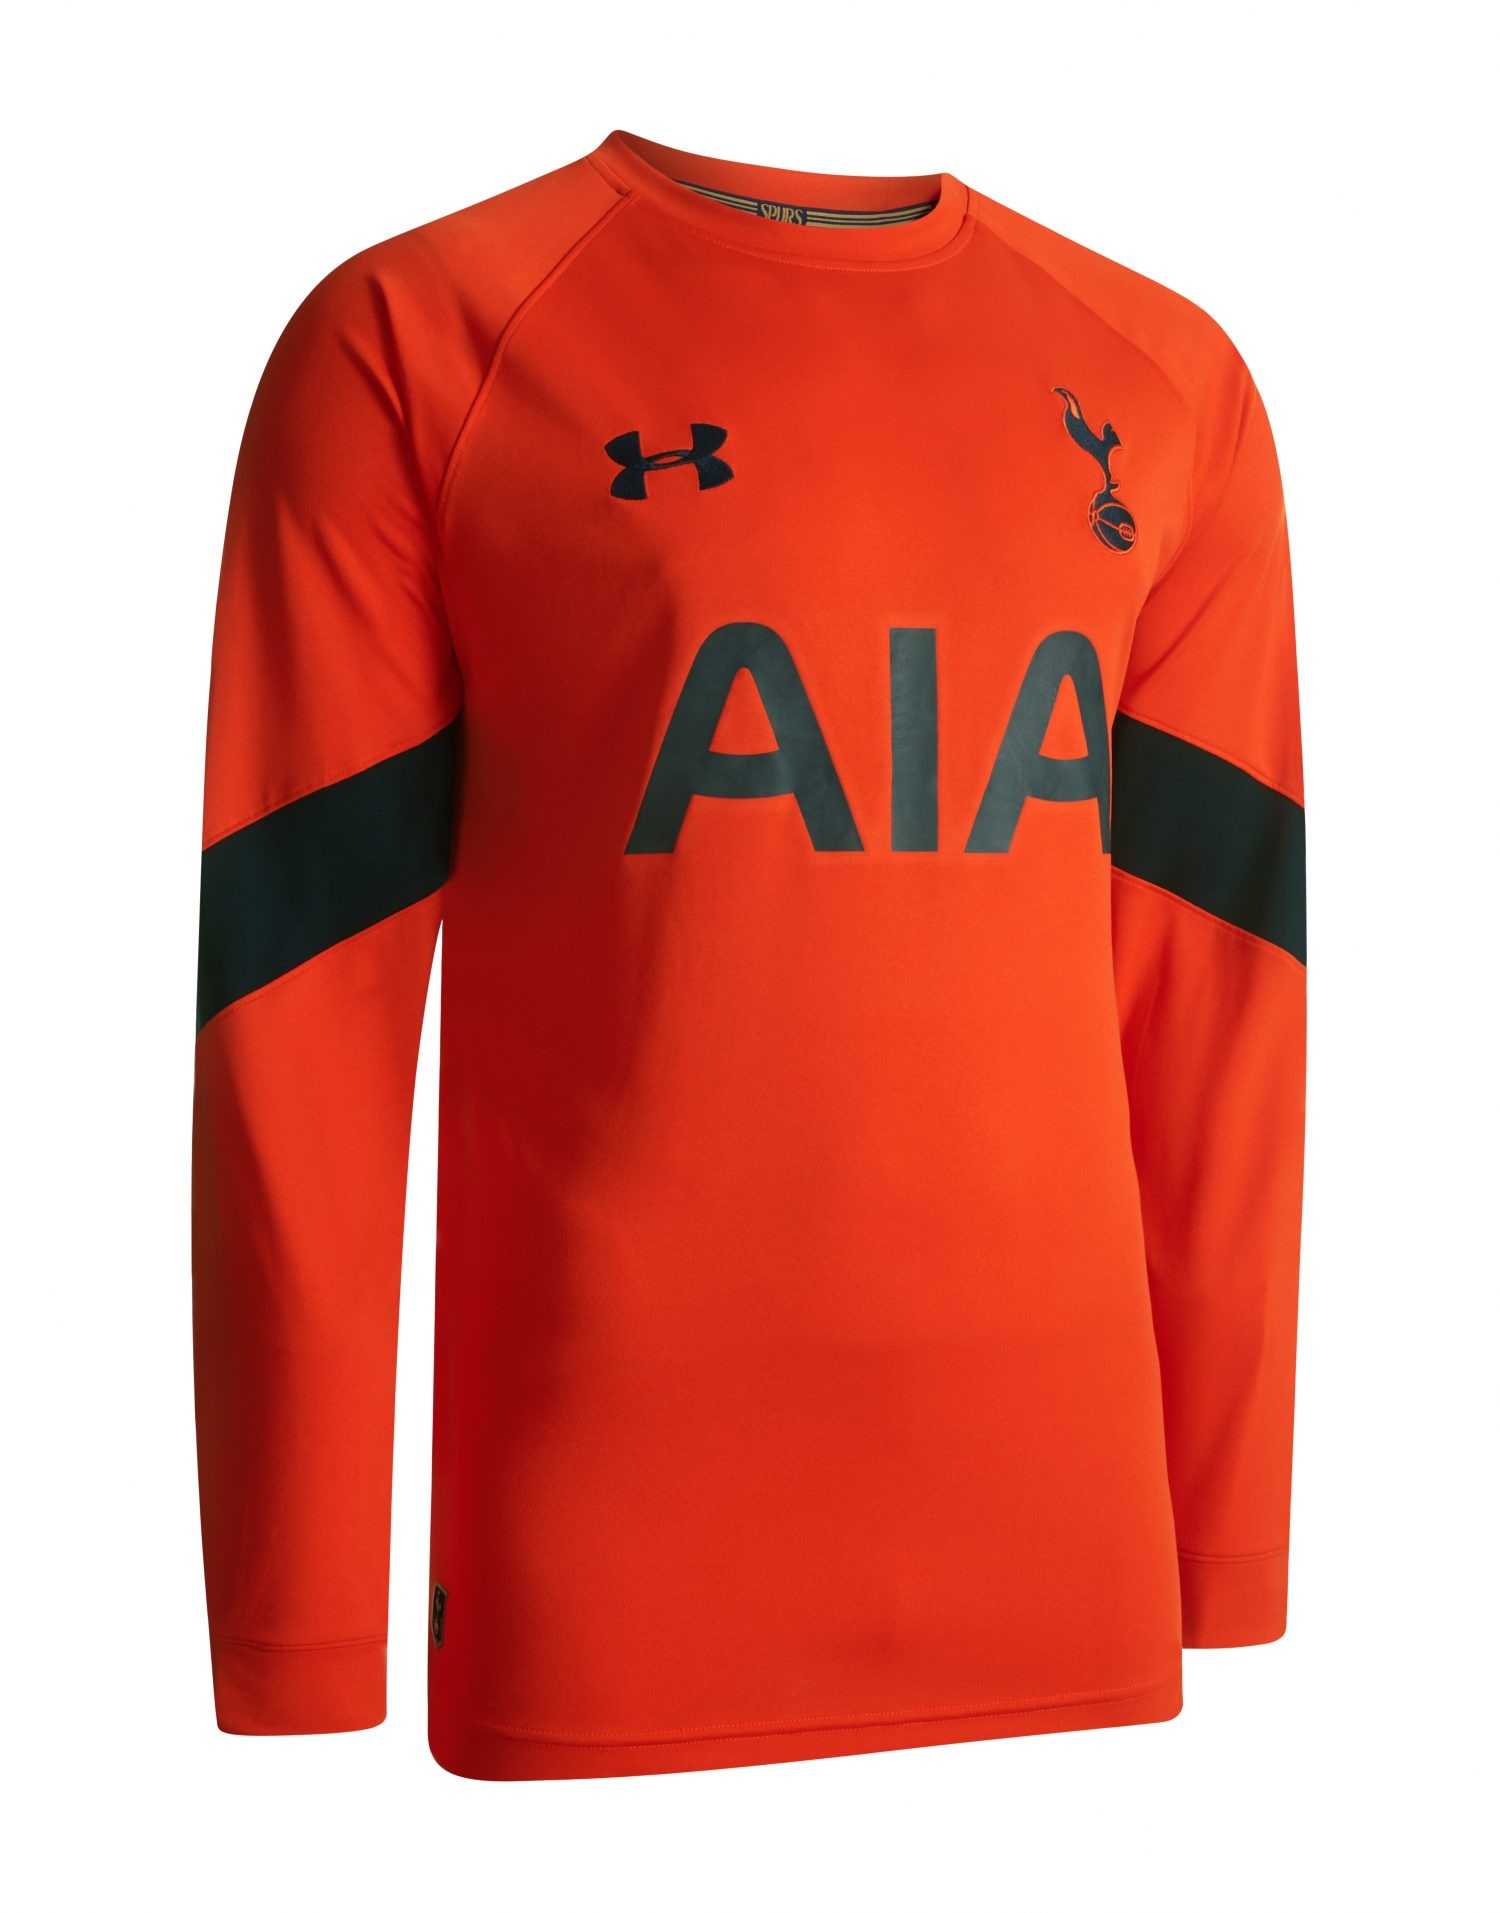 Tottenham Hotspur And Ua Unveil New Kits For 2016 17 Season Weartesters